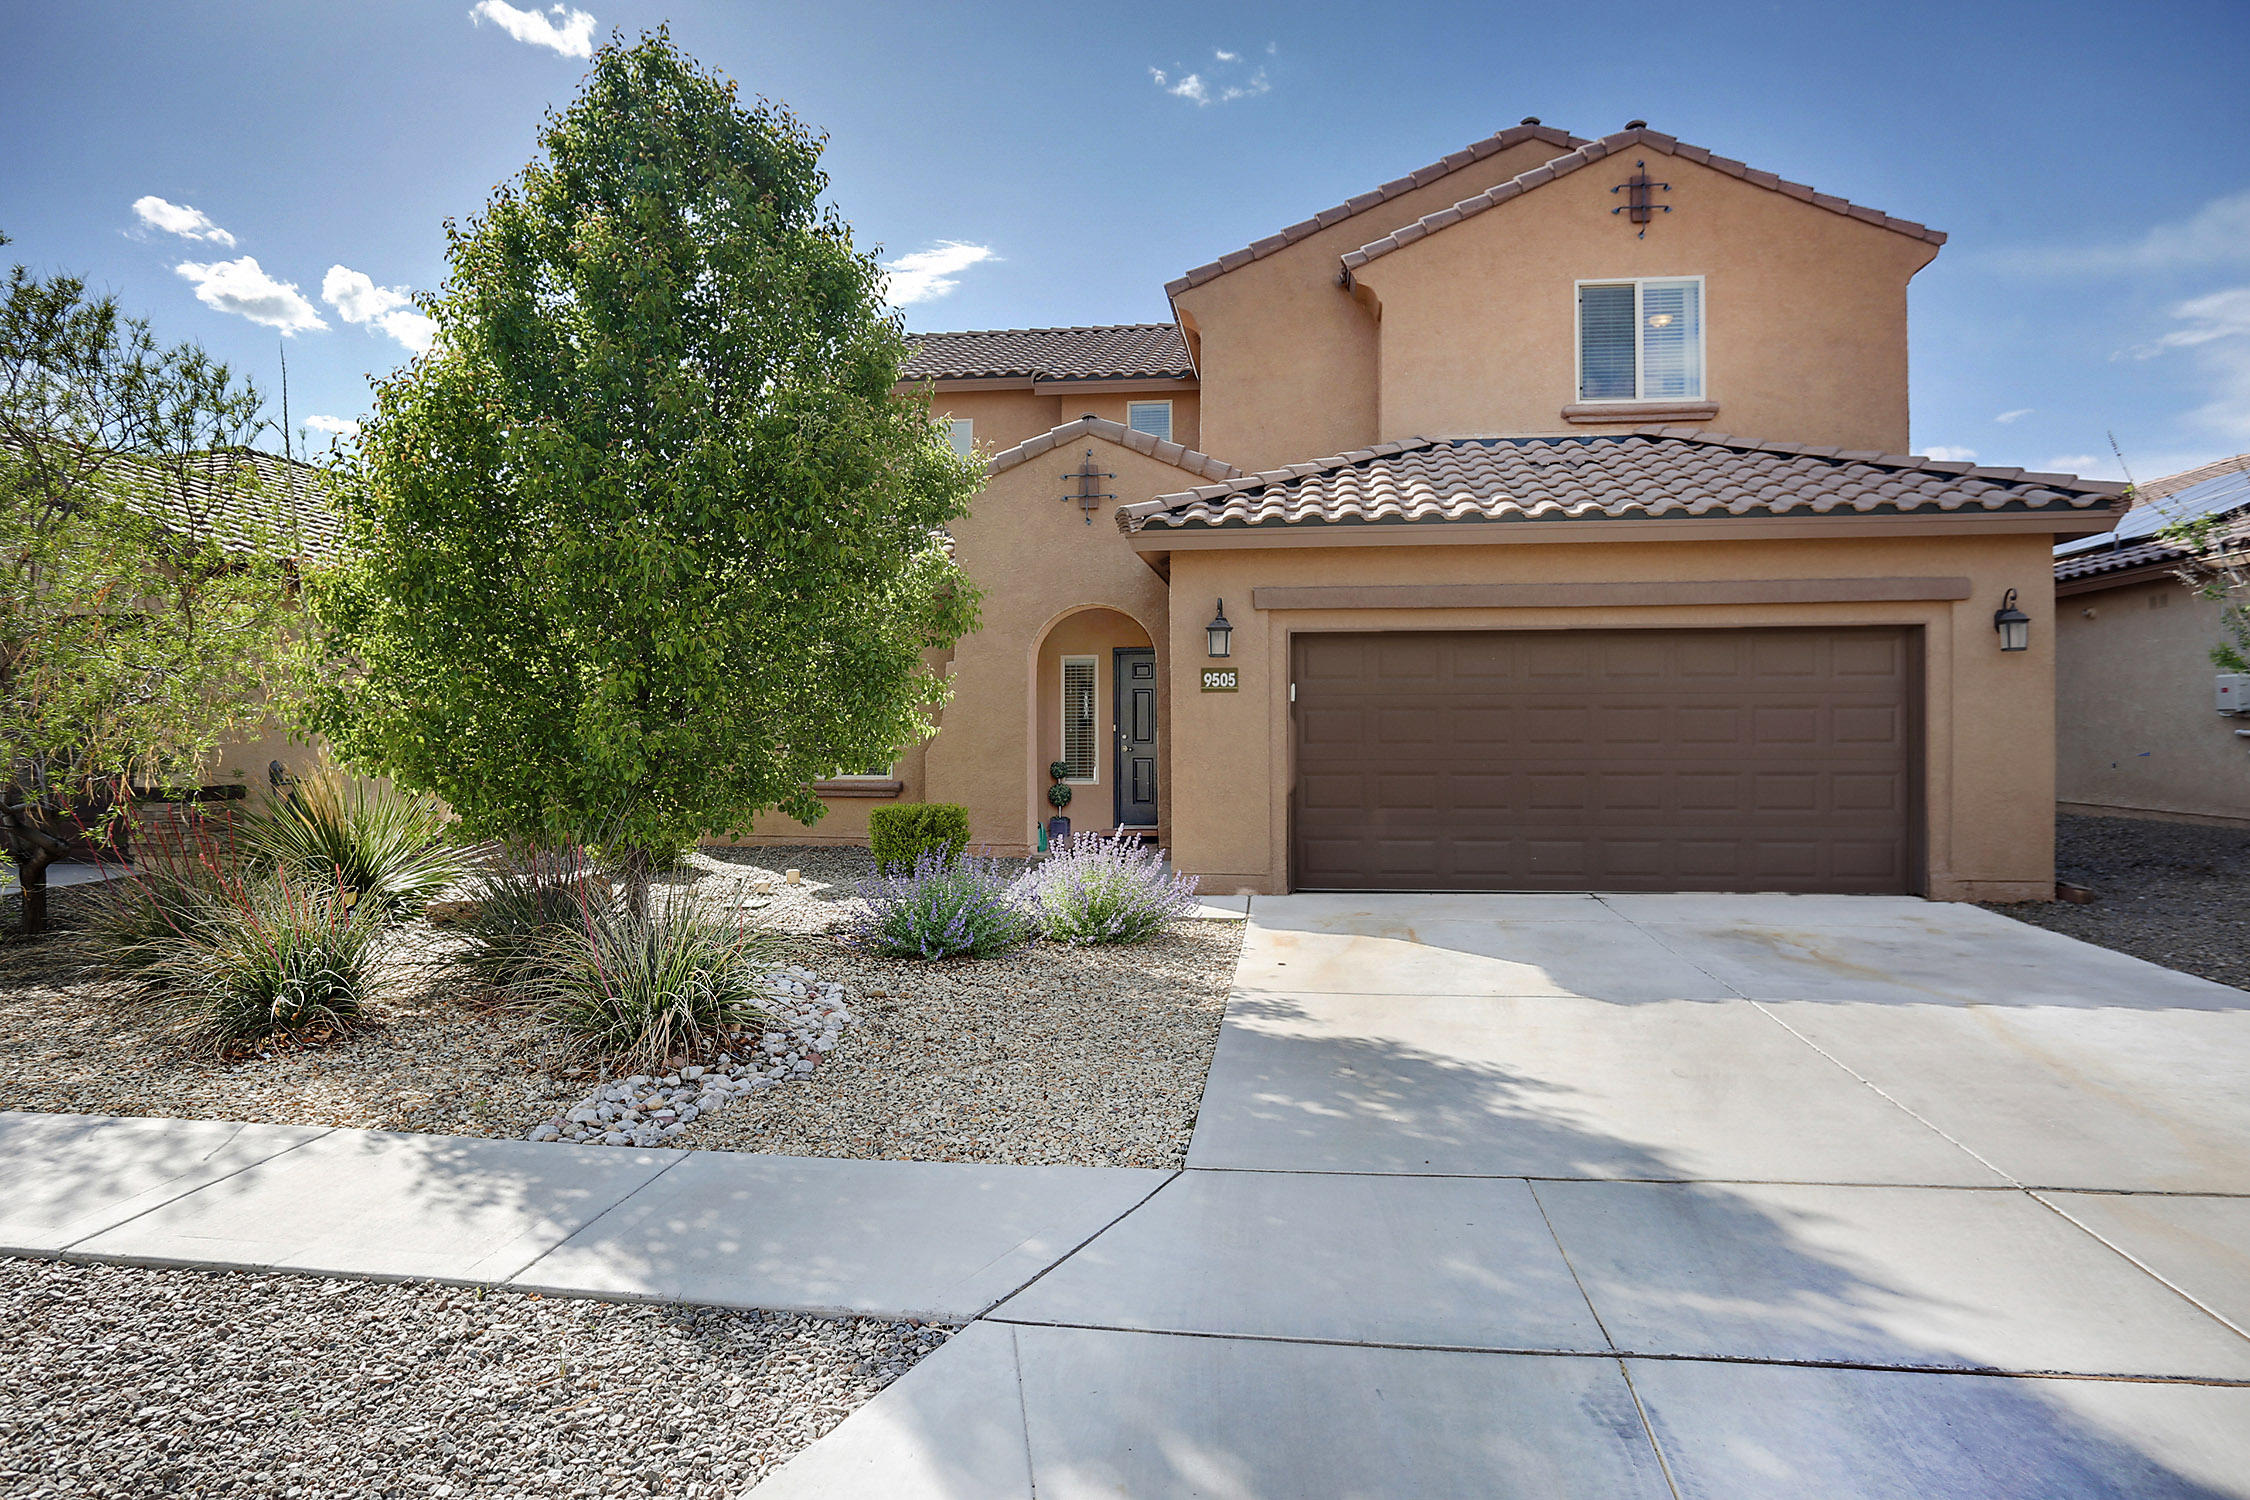 9505 GRANITE RIDGE Drive, Albuquerque NM 87114